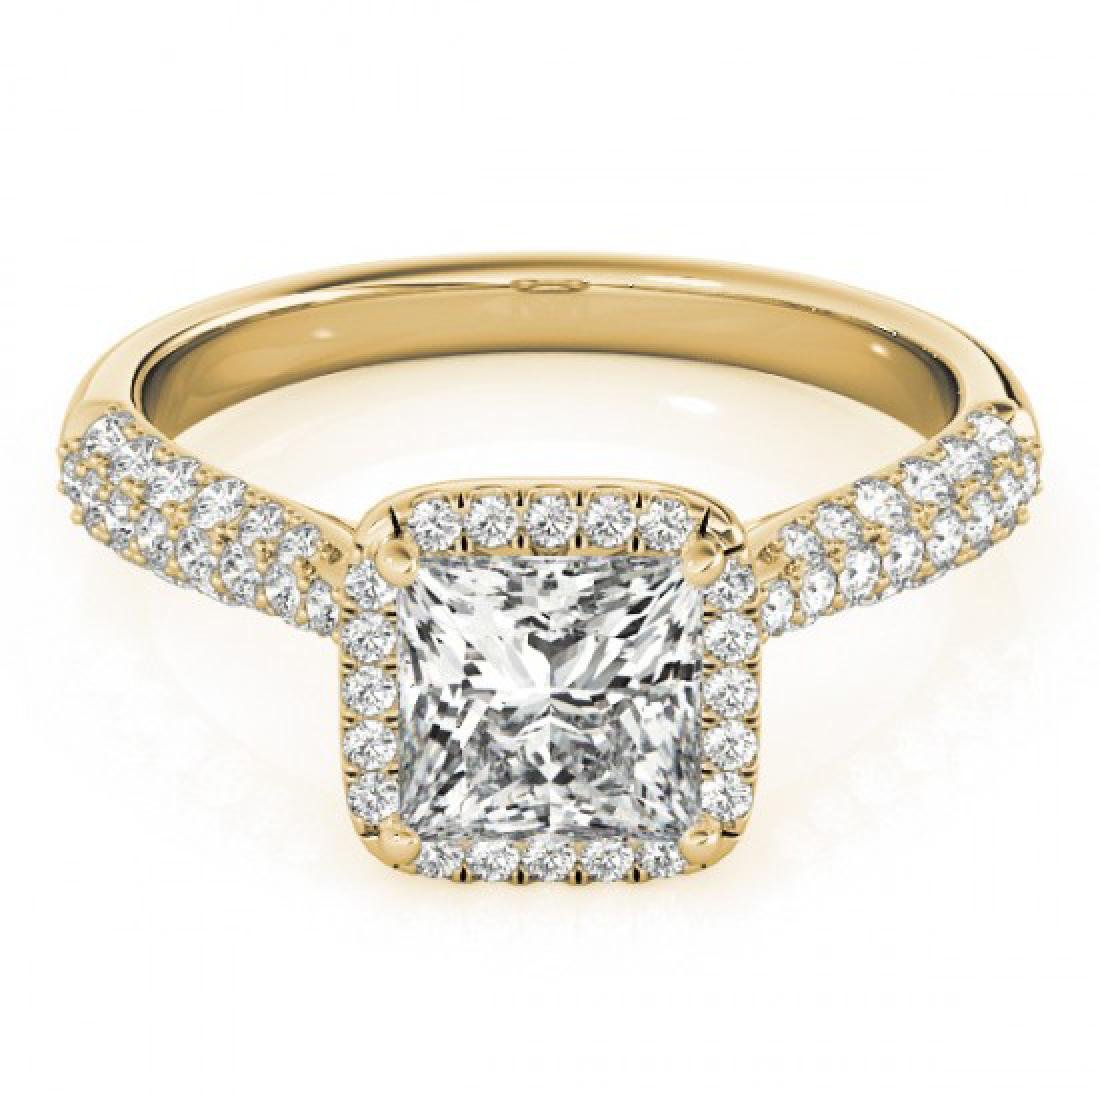 1.15 CTW Certified VS/SI Princess Diamond Solitaire